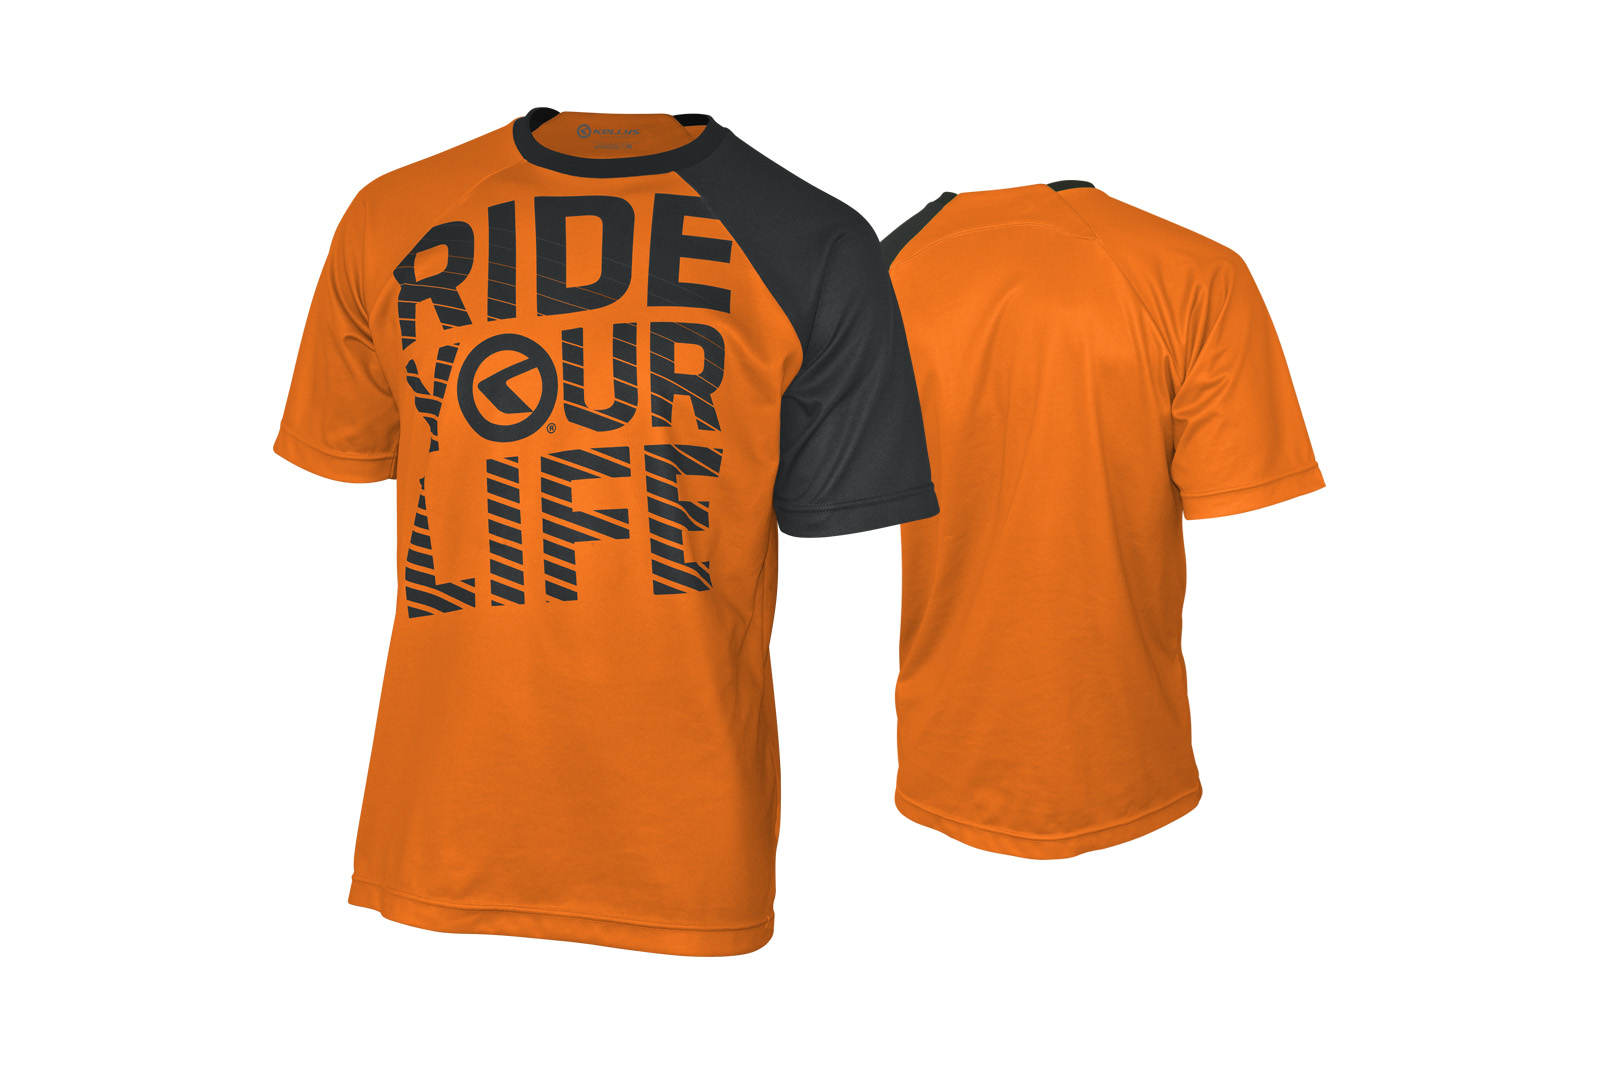 Kurzarmtrikot KELLYS RIDE YOUR LIFE orange - S - Kurzarmtrikot KELLYS RIDE YOUR LIFE orange - S